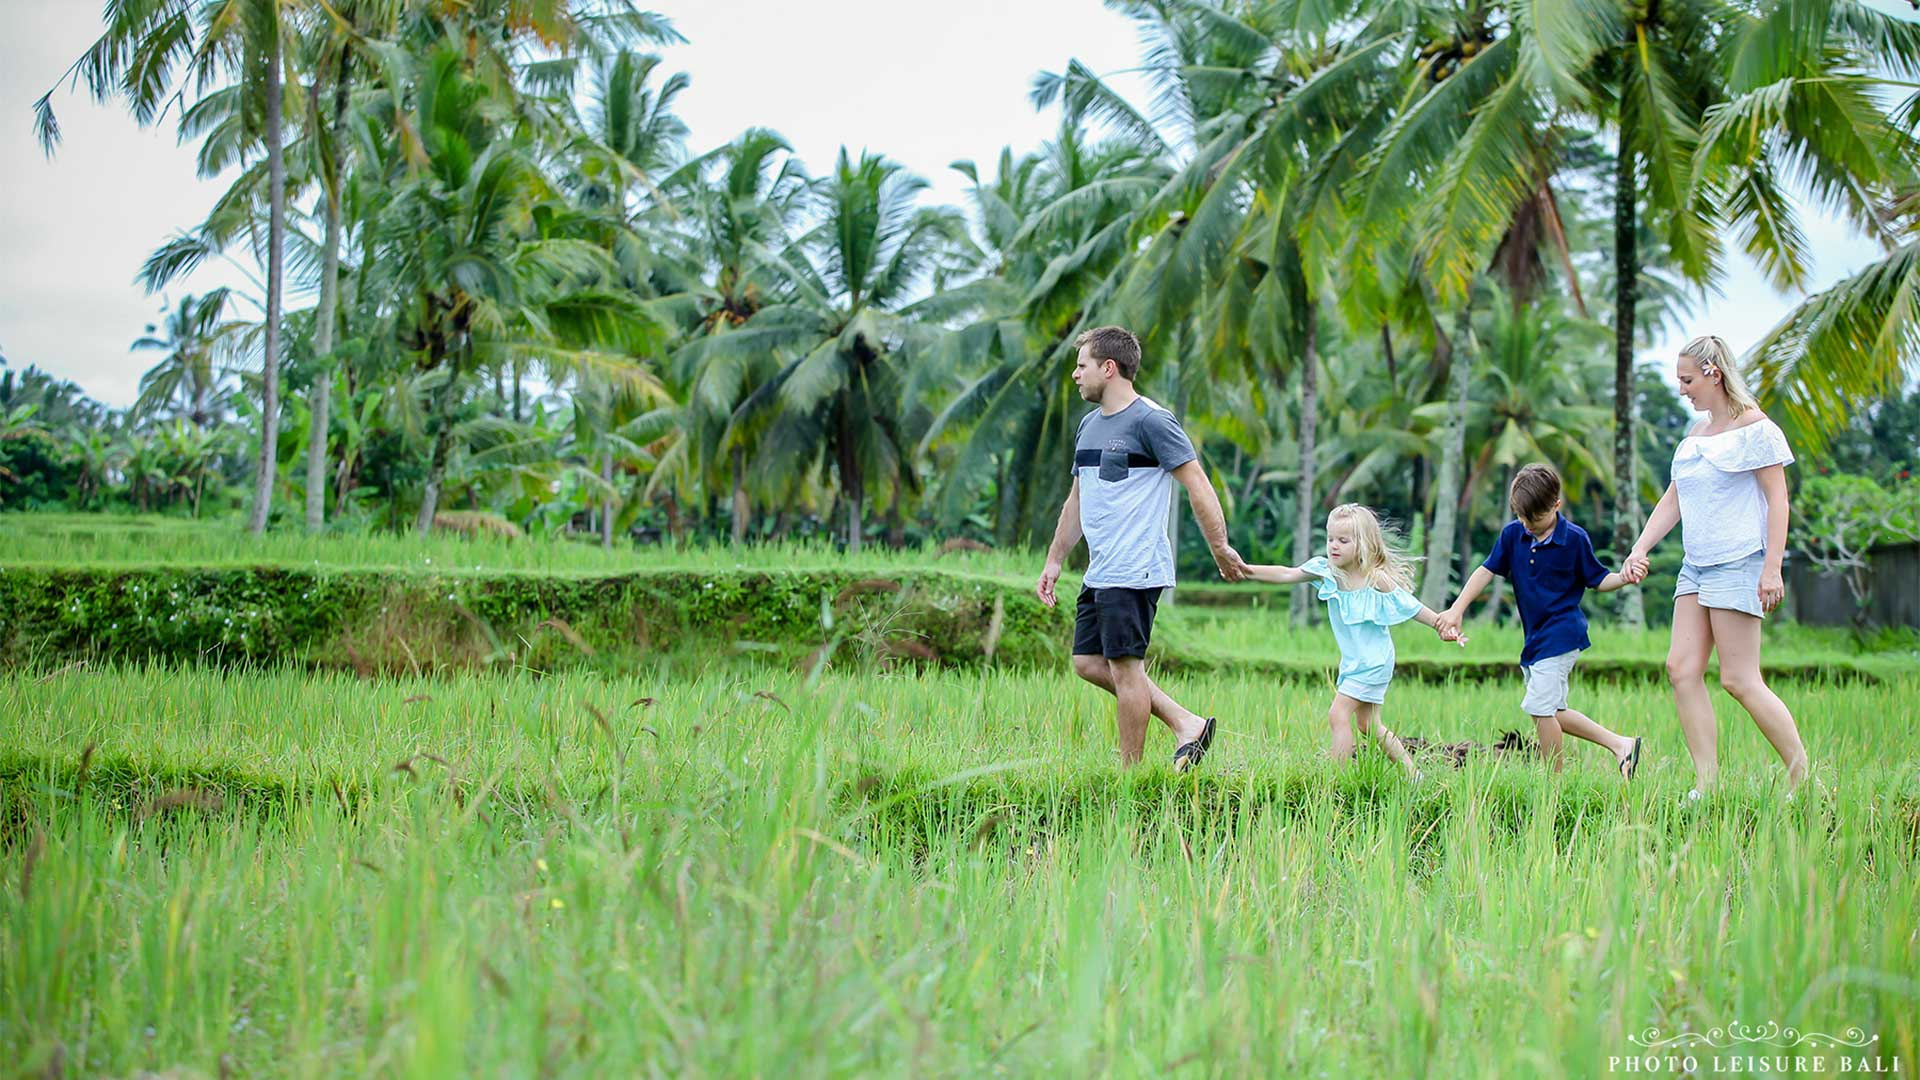 walking with your family at field rice by dedary kriyamaha villa 2